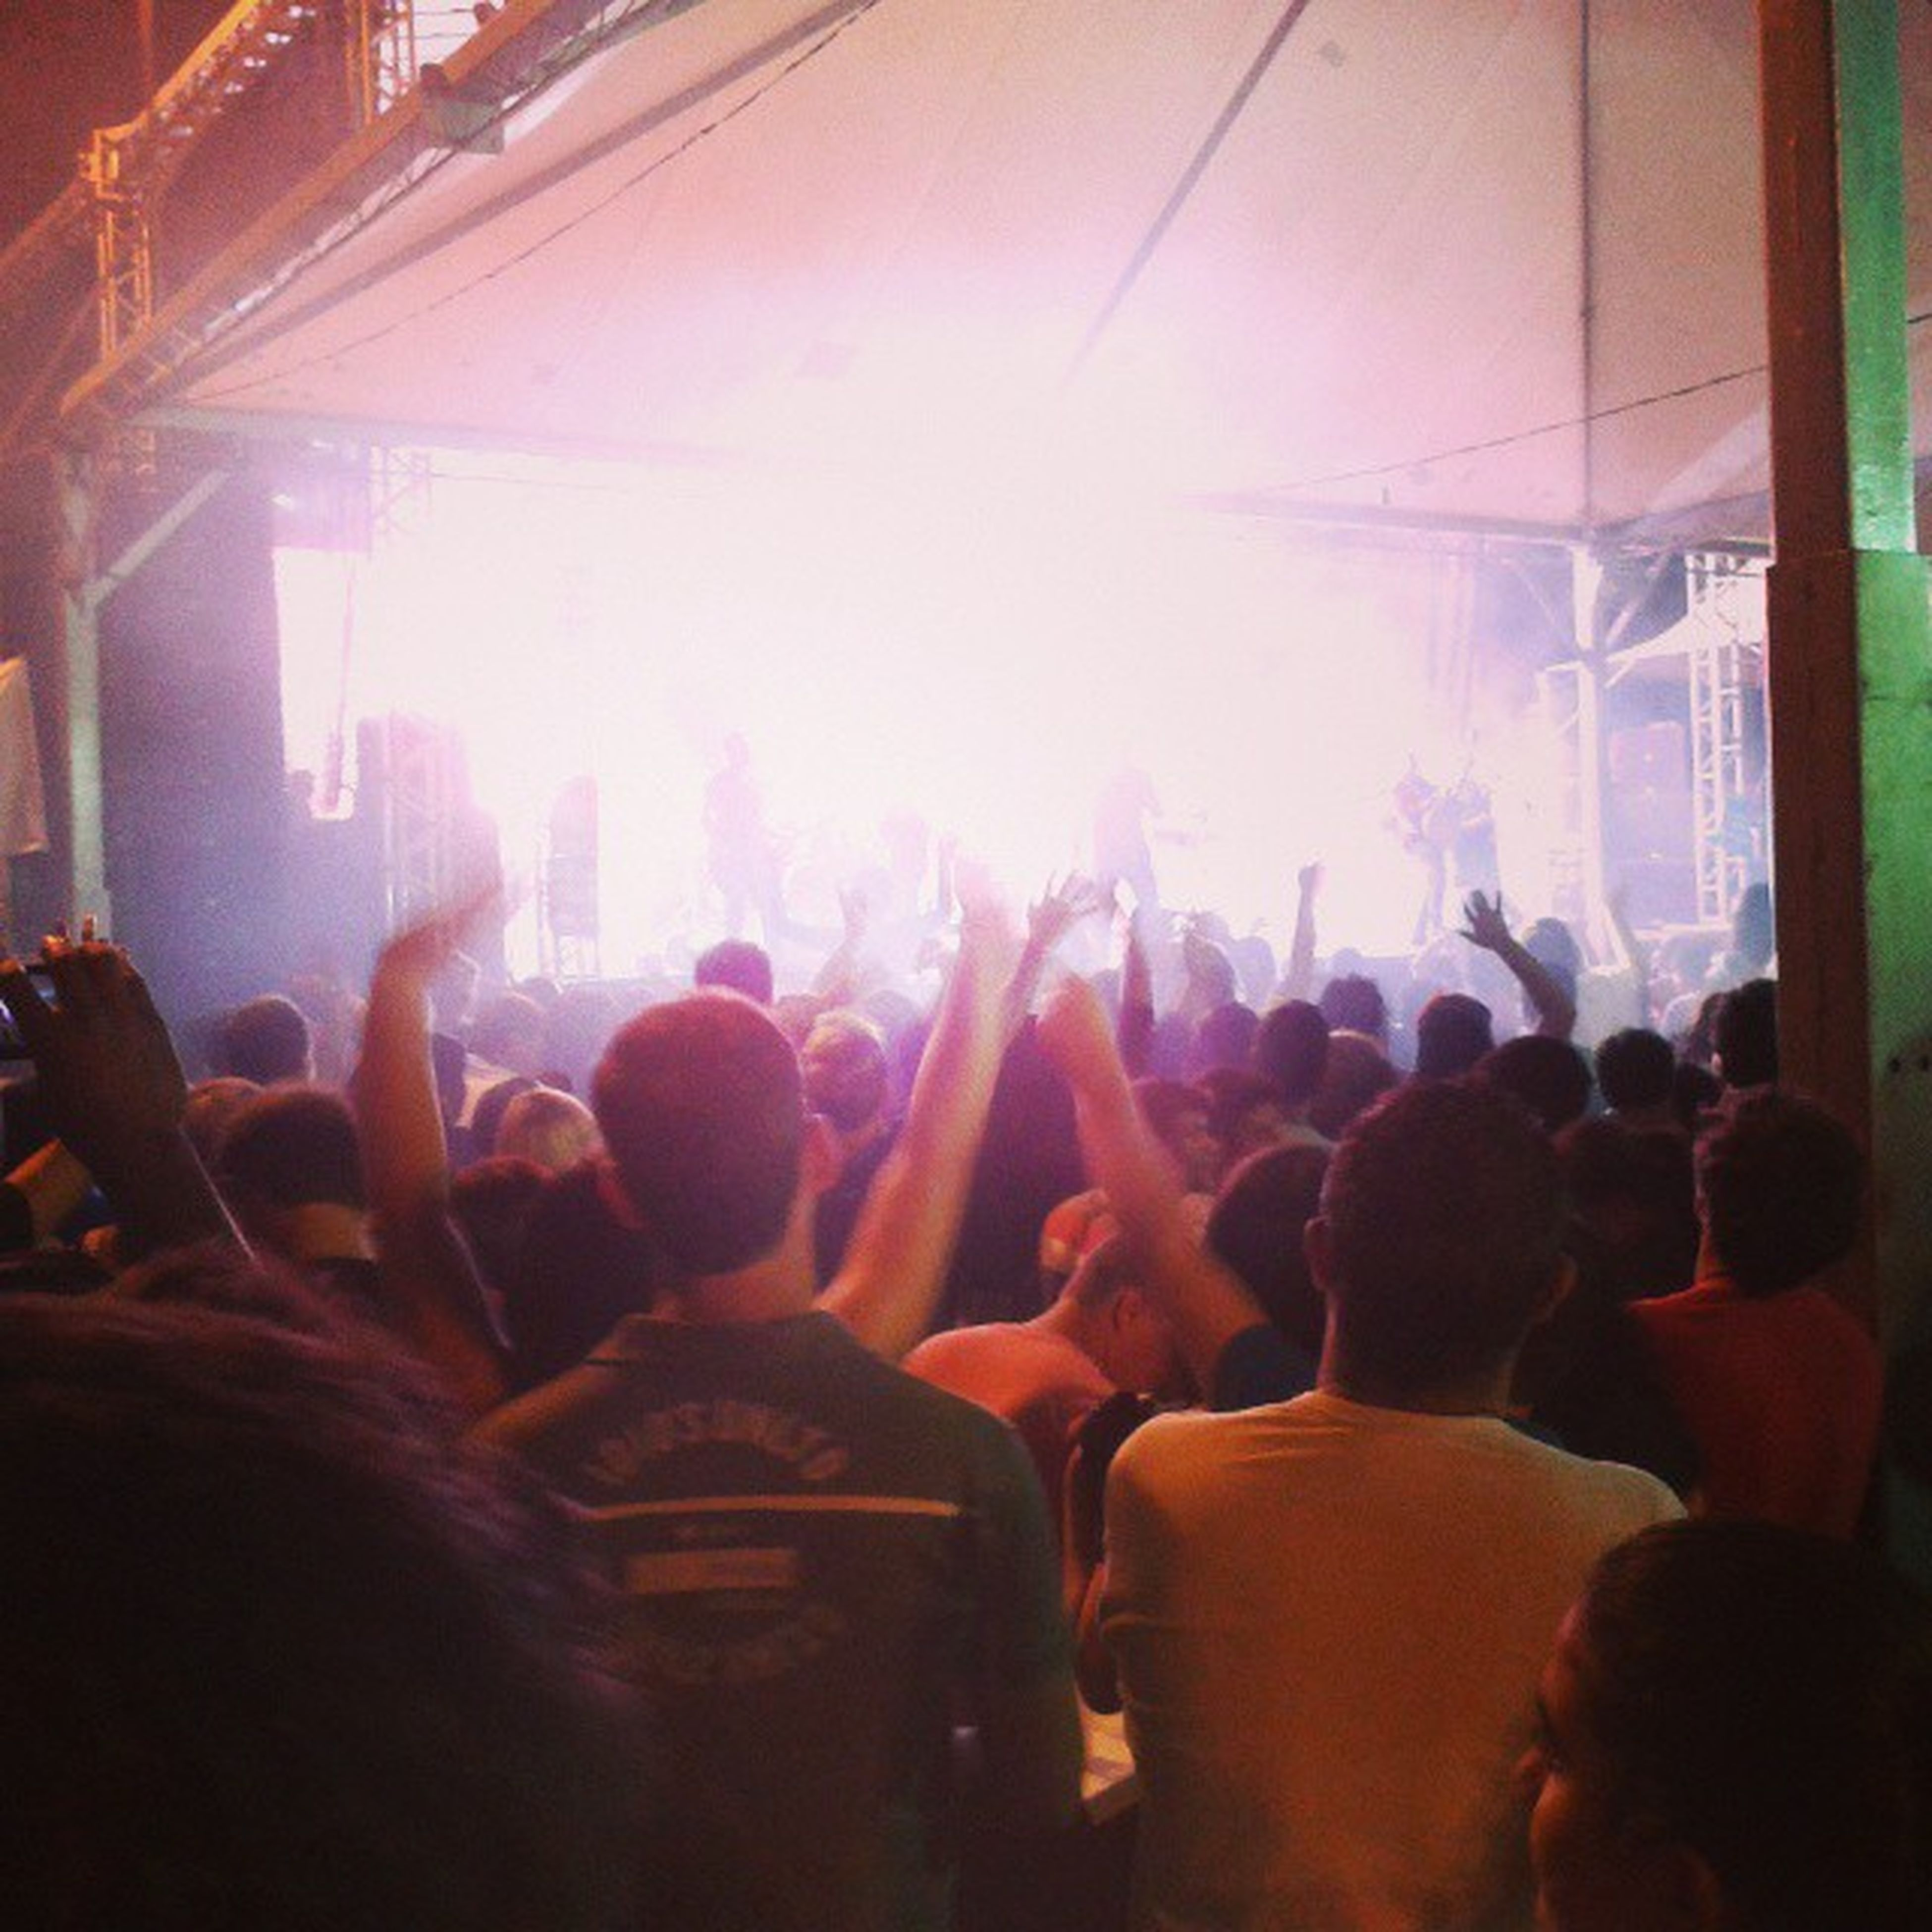 large group of people, crowd, men, lifestyles, person, leisure activity, illuminated, arts culture and entertainment, nightlife, event, enjoyment, music, performance, music festival, concert, indoors, popular music concert, togetherness